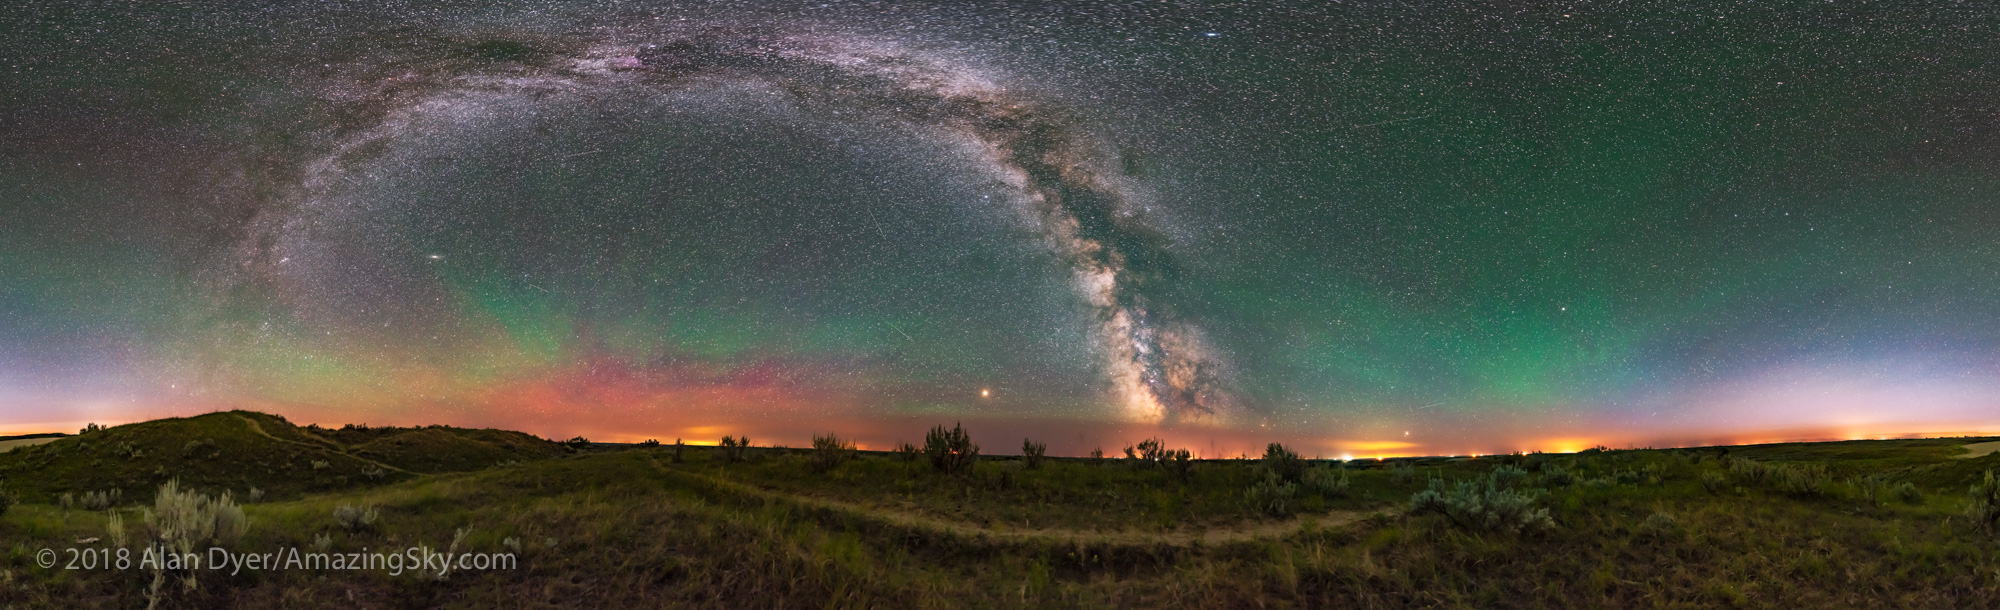 Panorama of the Milky Way over the Great Sandhills